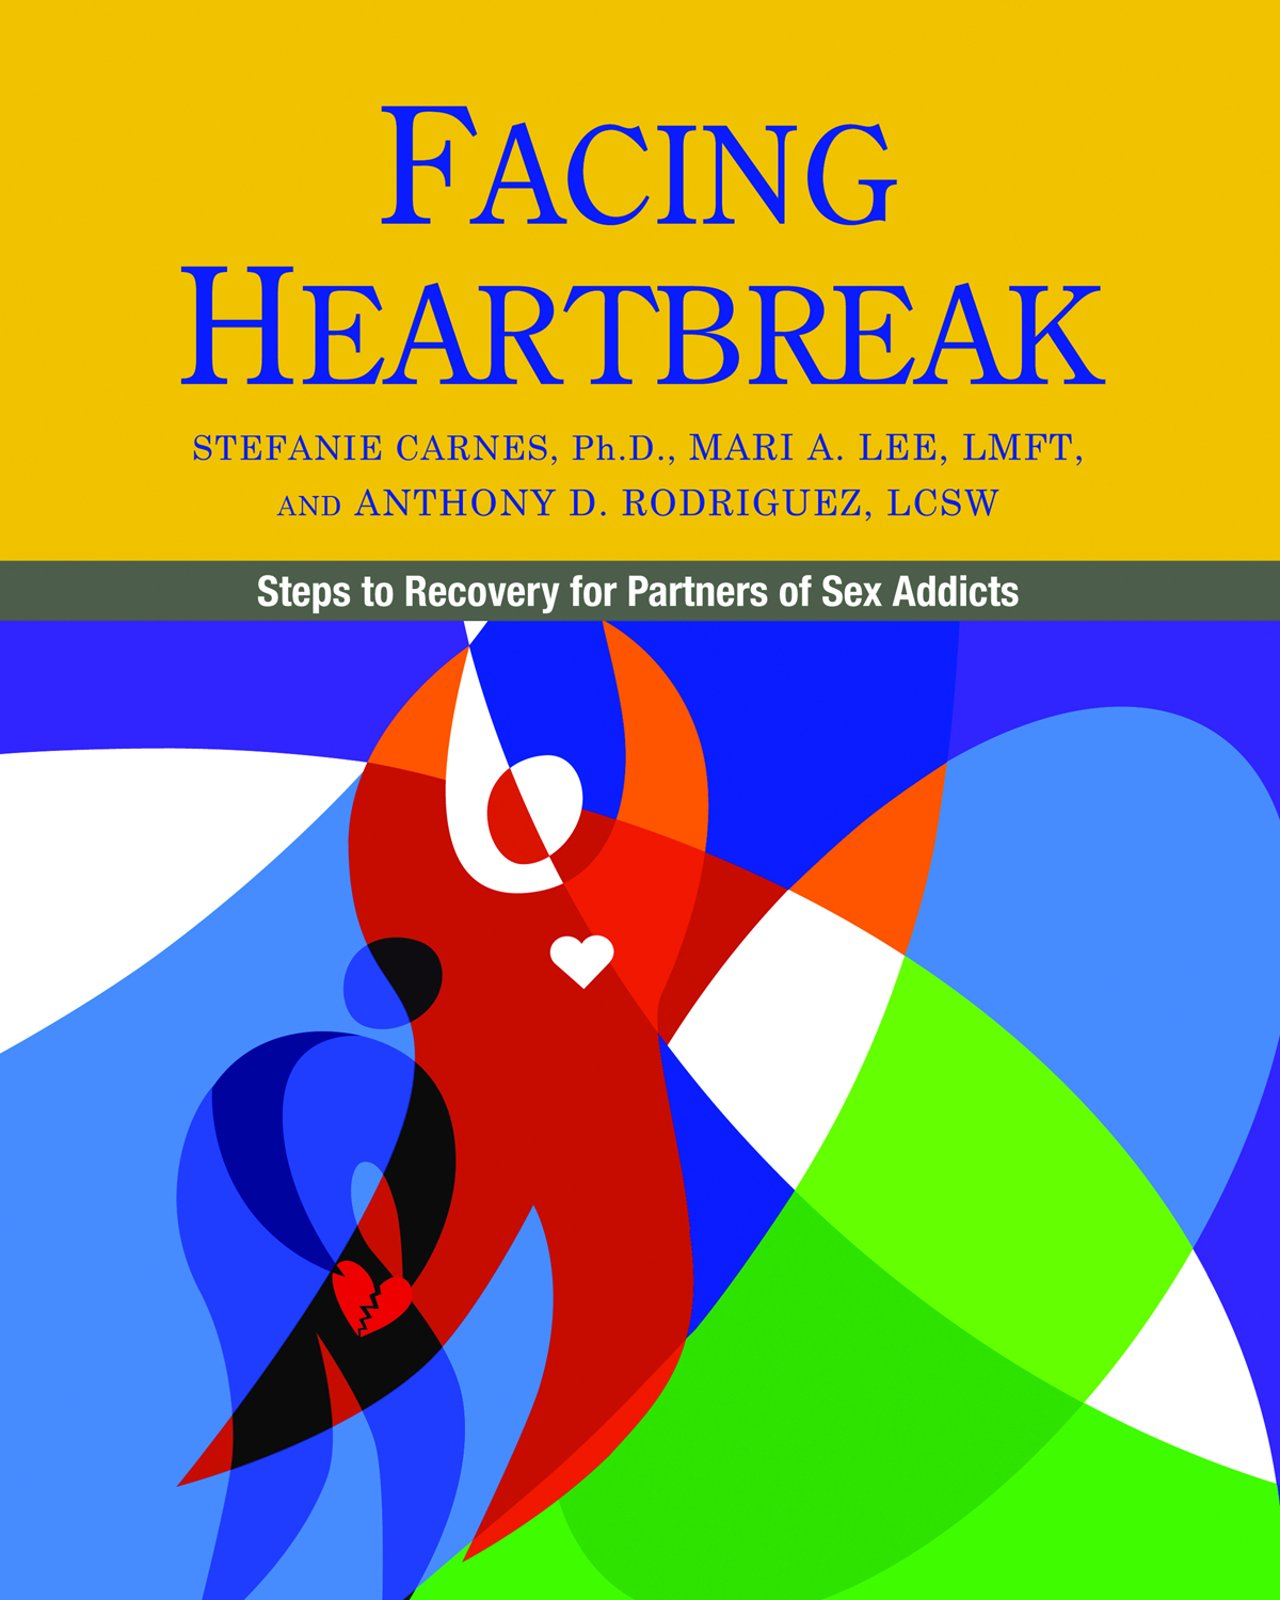 Facing Heartbreak Book Cover